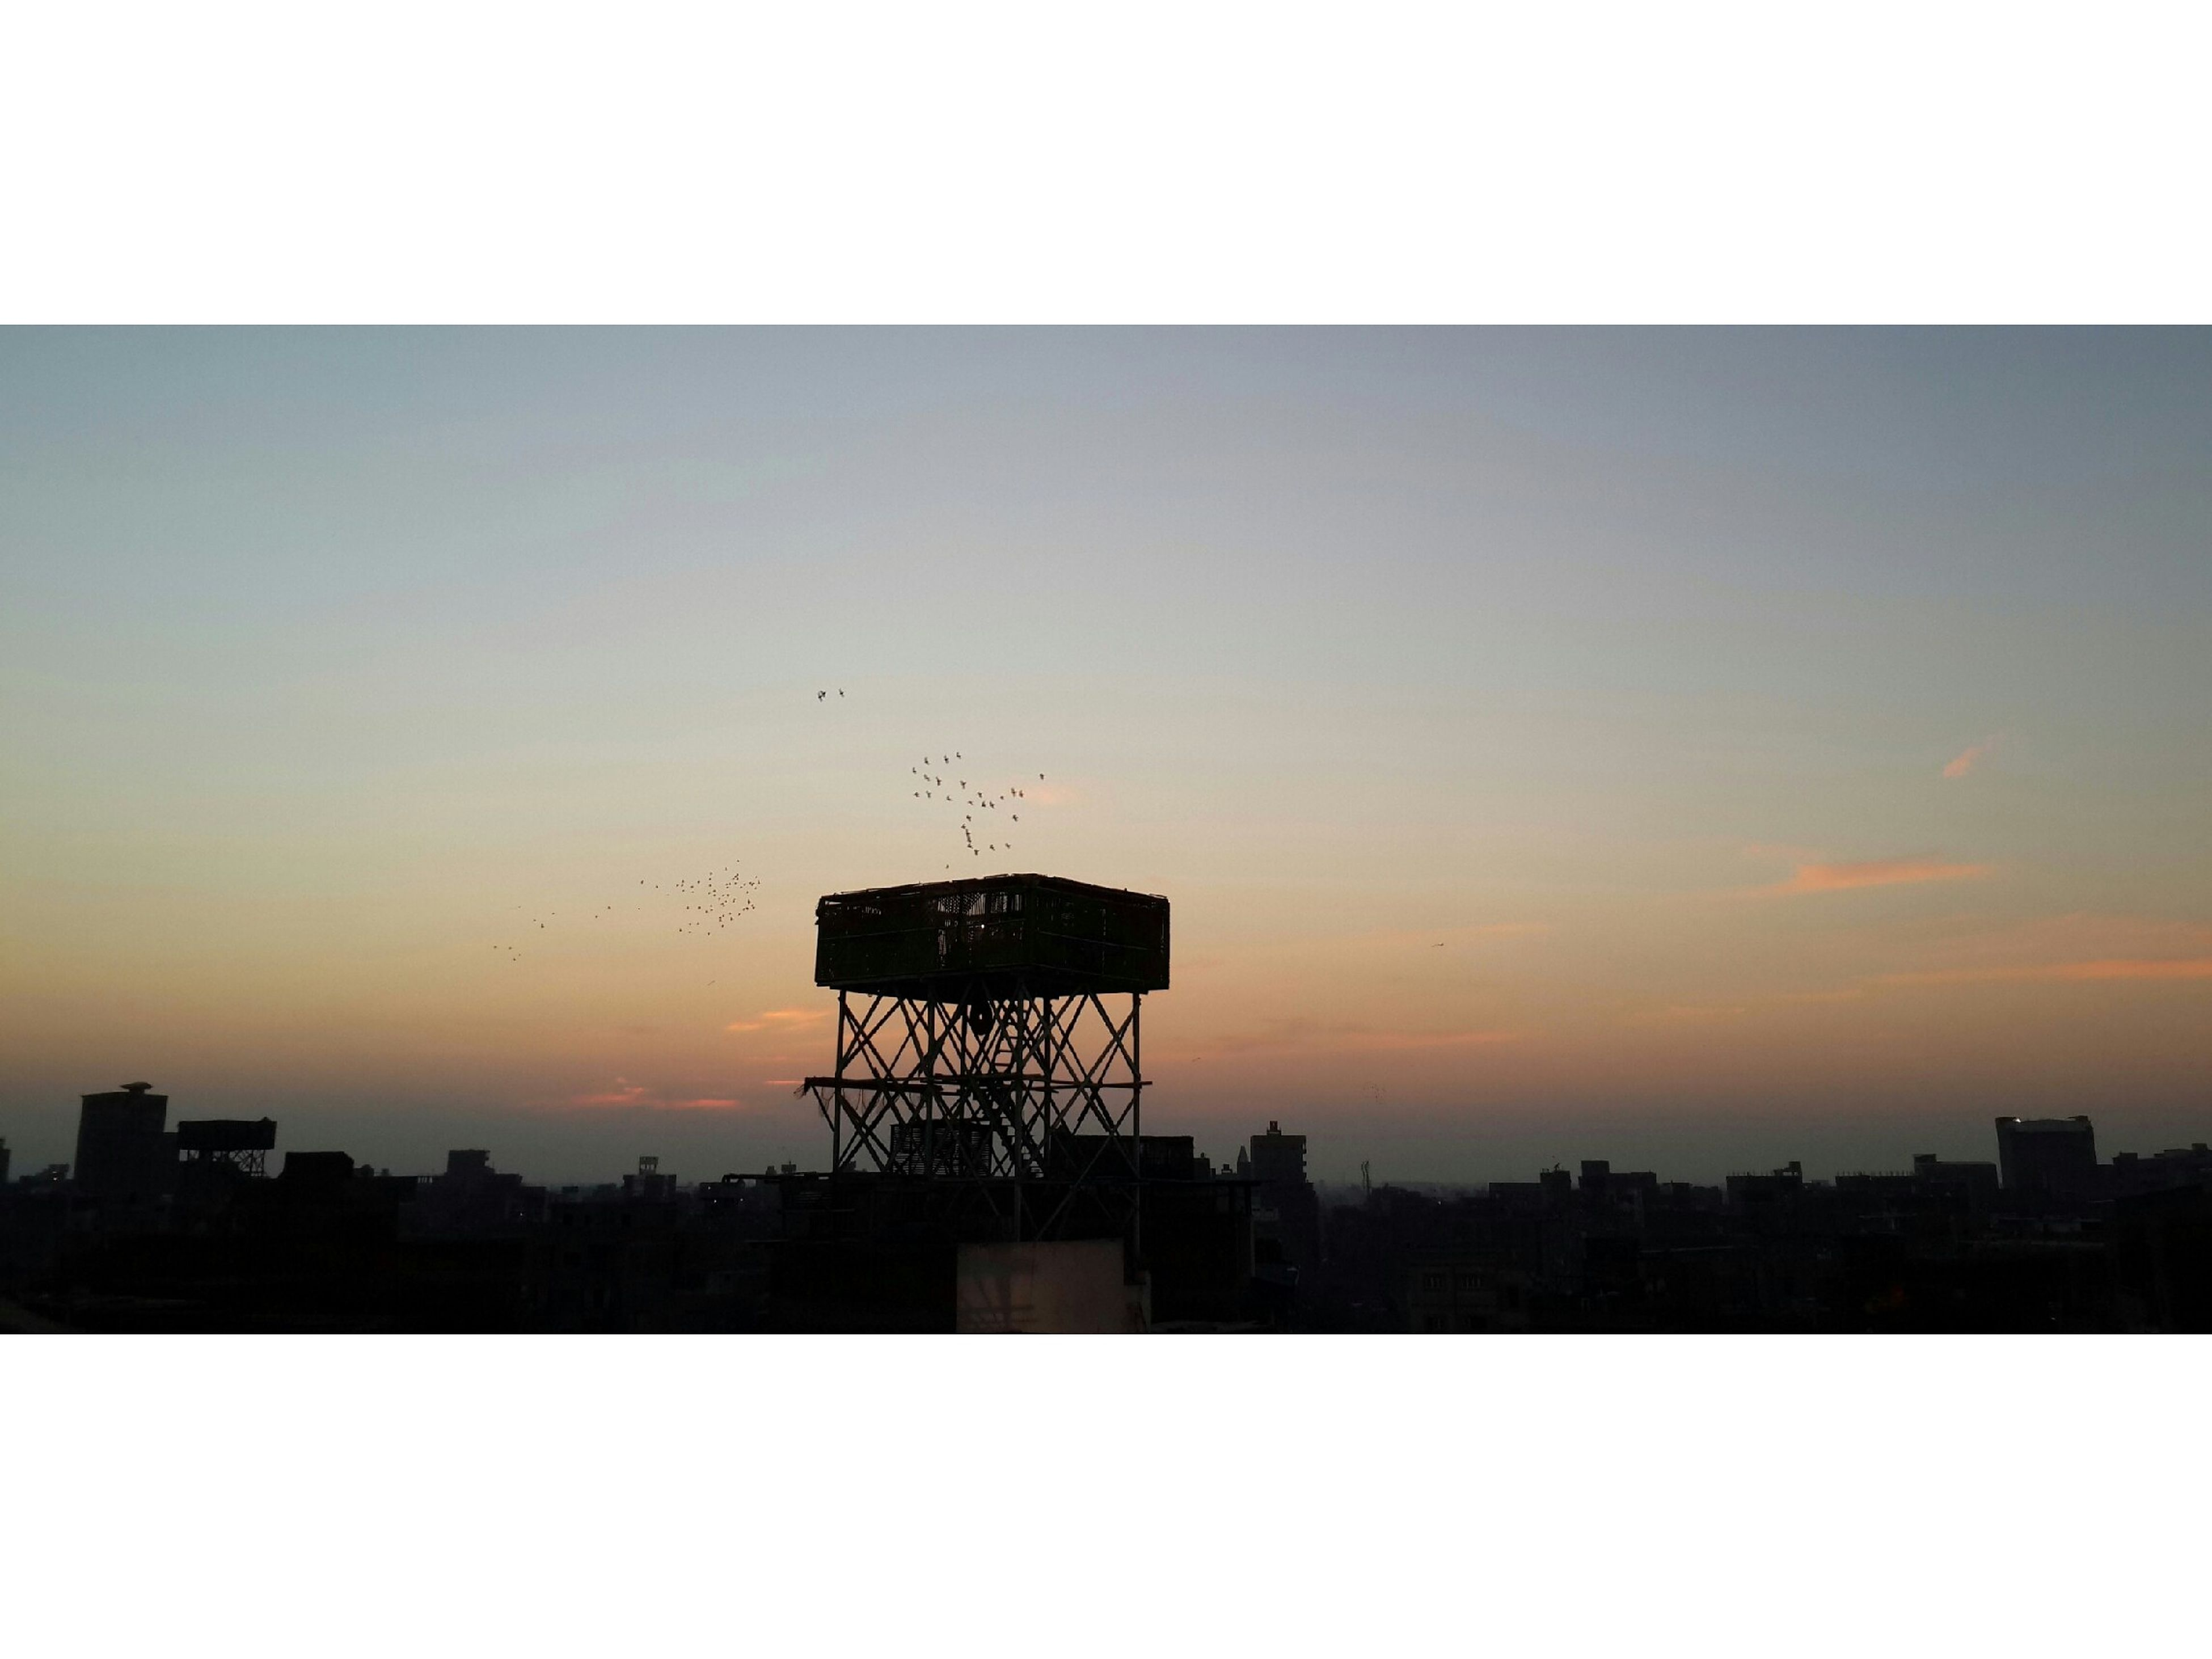 sunset, silhouette, built structure, architecture, water tower - storage tank, building exterior, sky, storage tank, water tank, outdoors, no people, nature, city, day